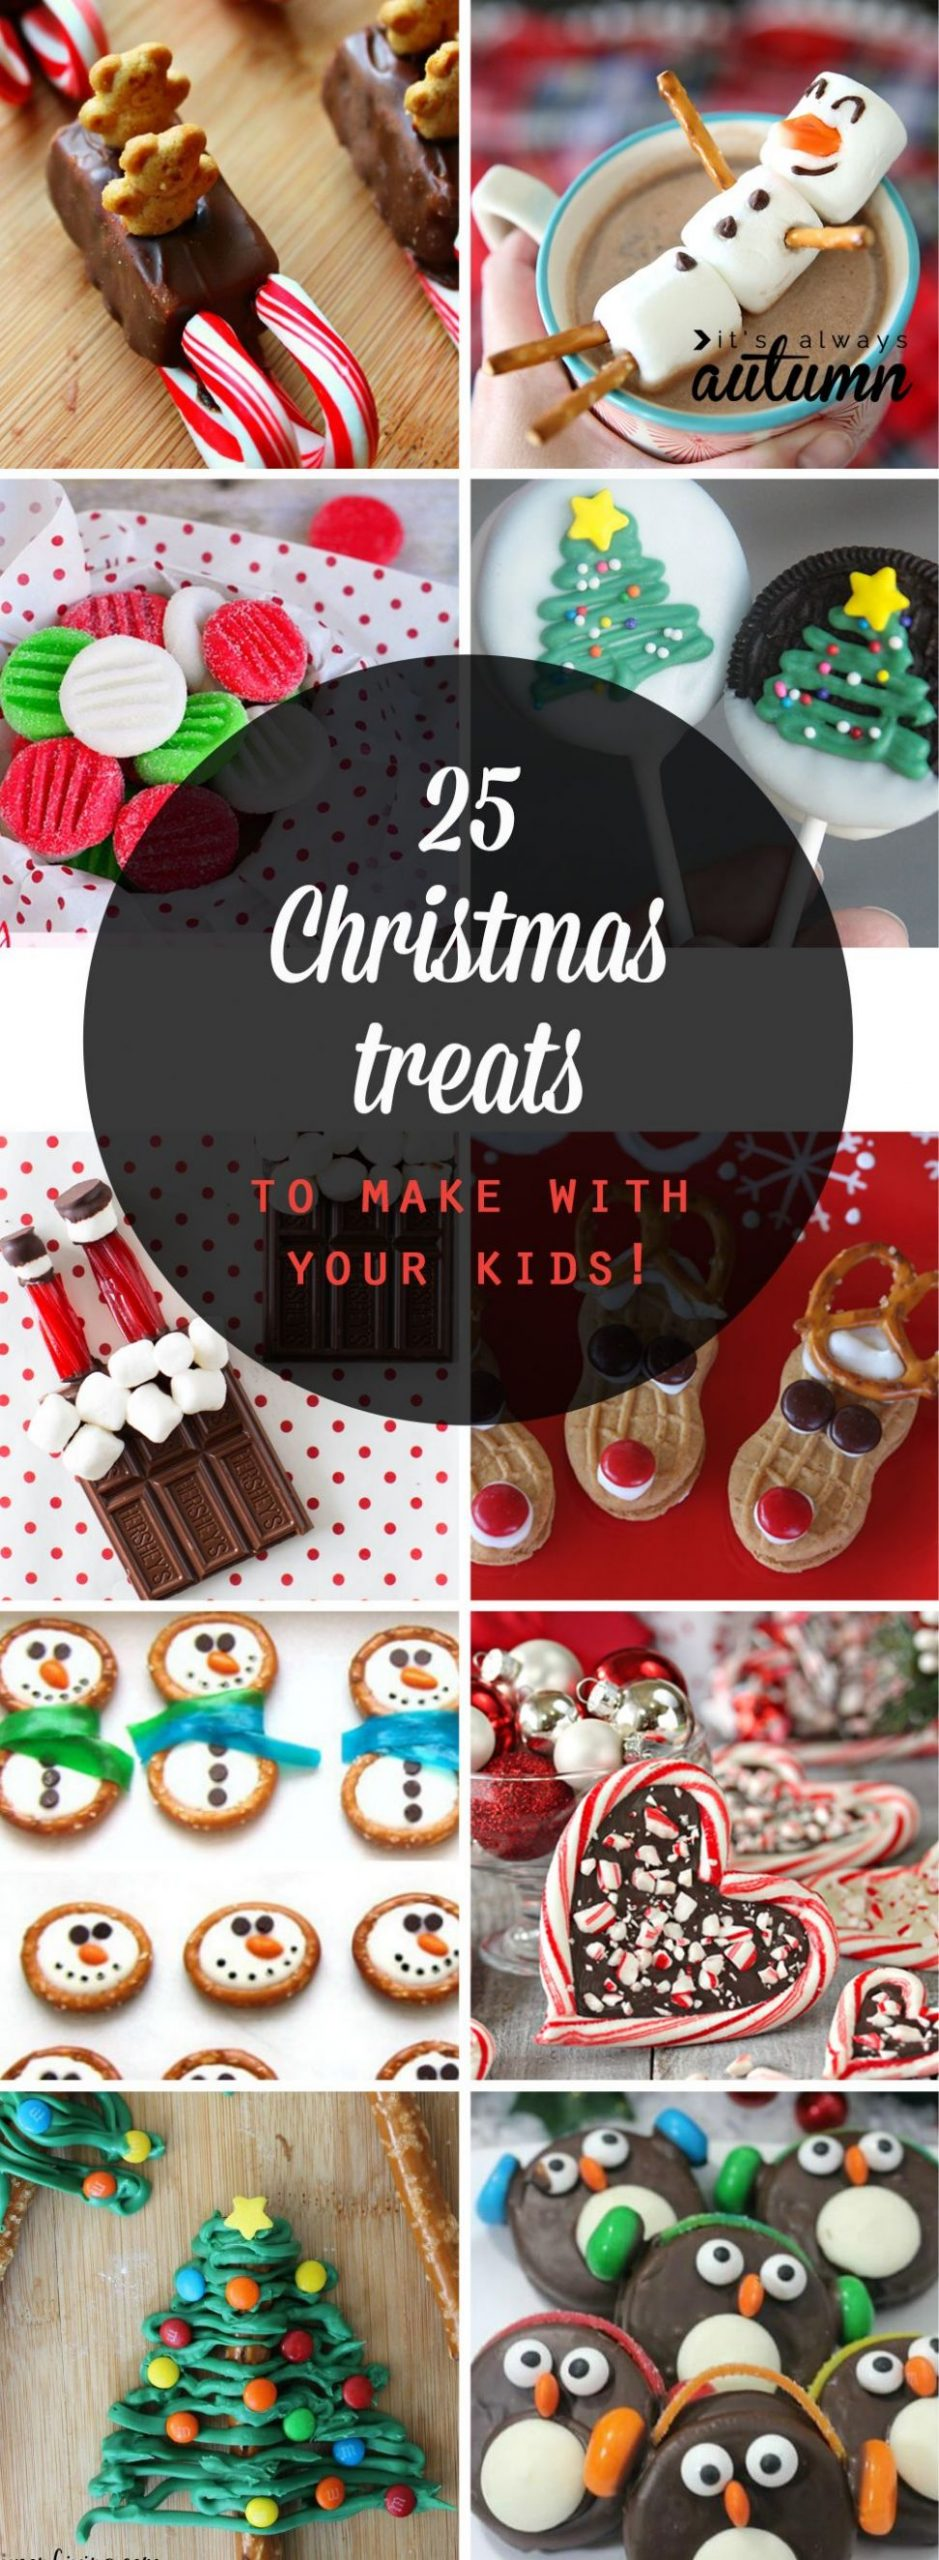 9 adorable Christmas treats to make with your kids | Christmas ..